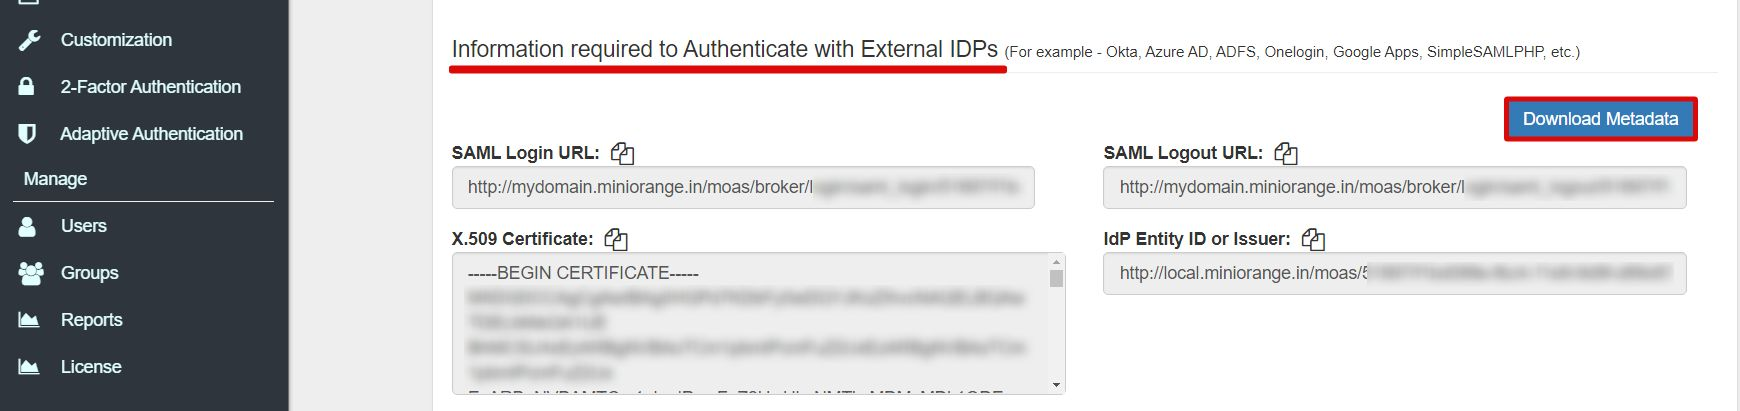 SAML external authentication Single Sign On for SAML Apps